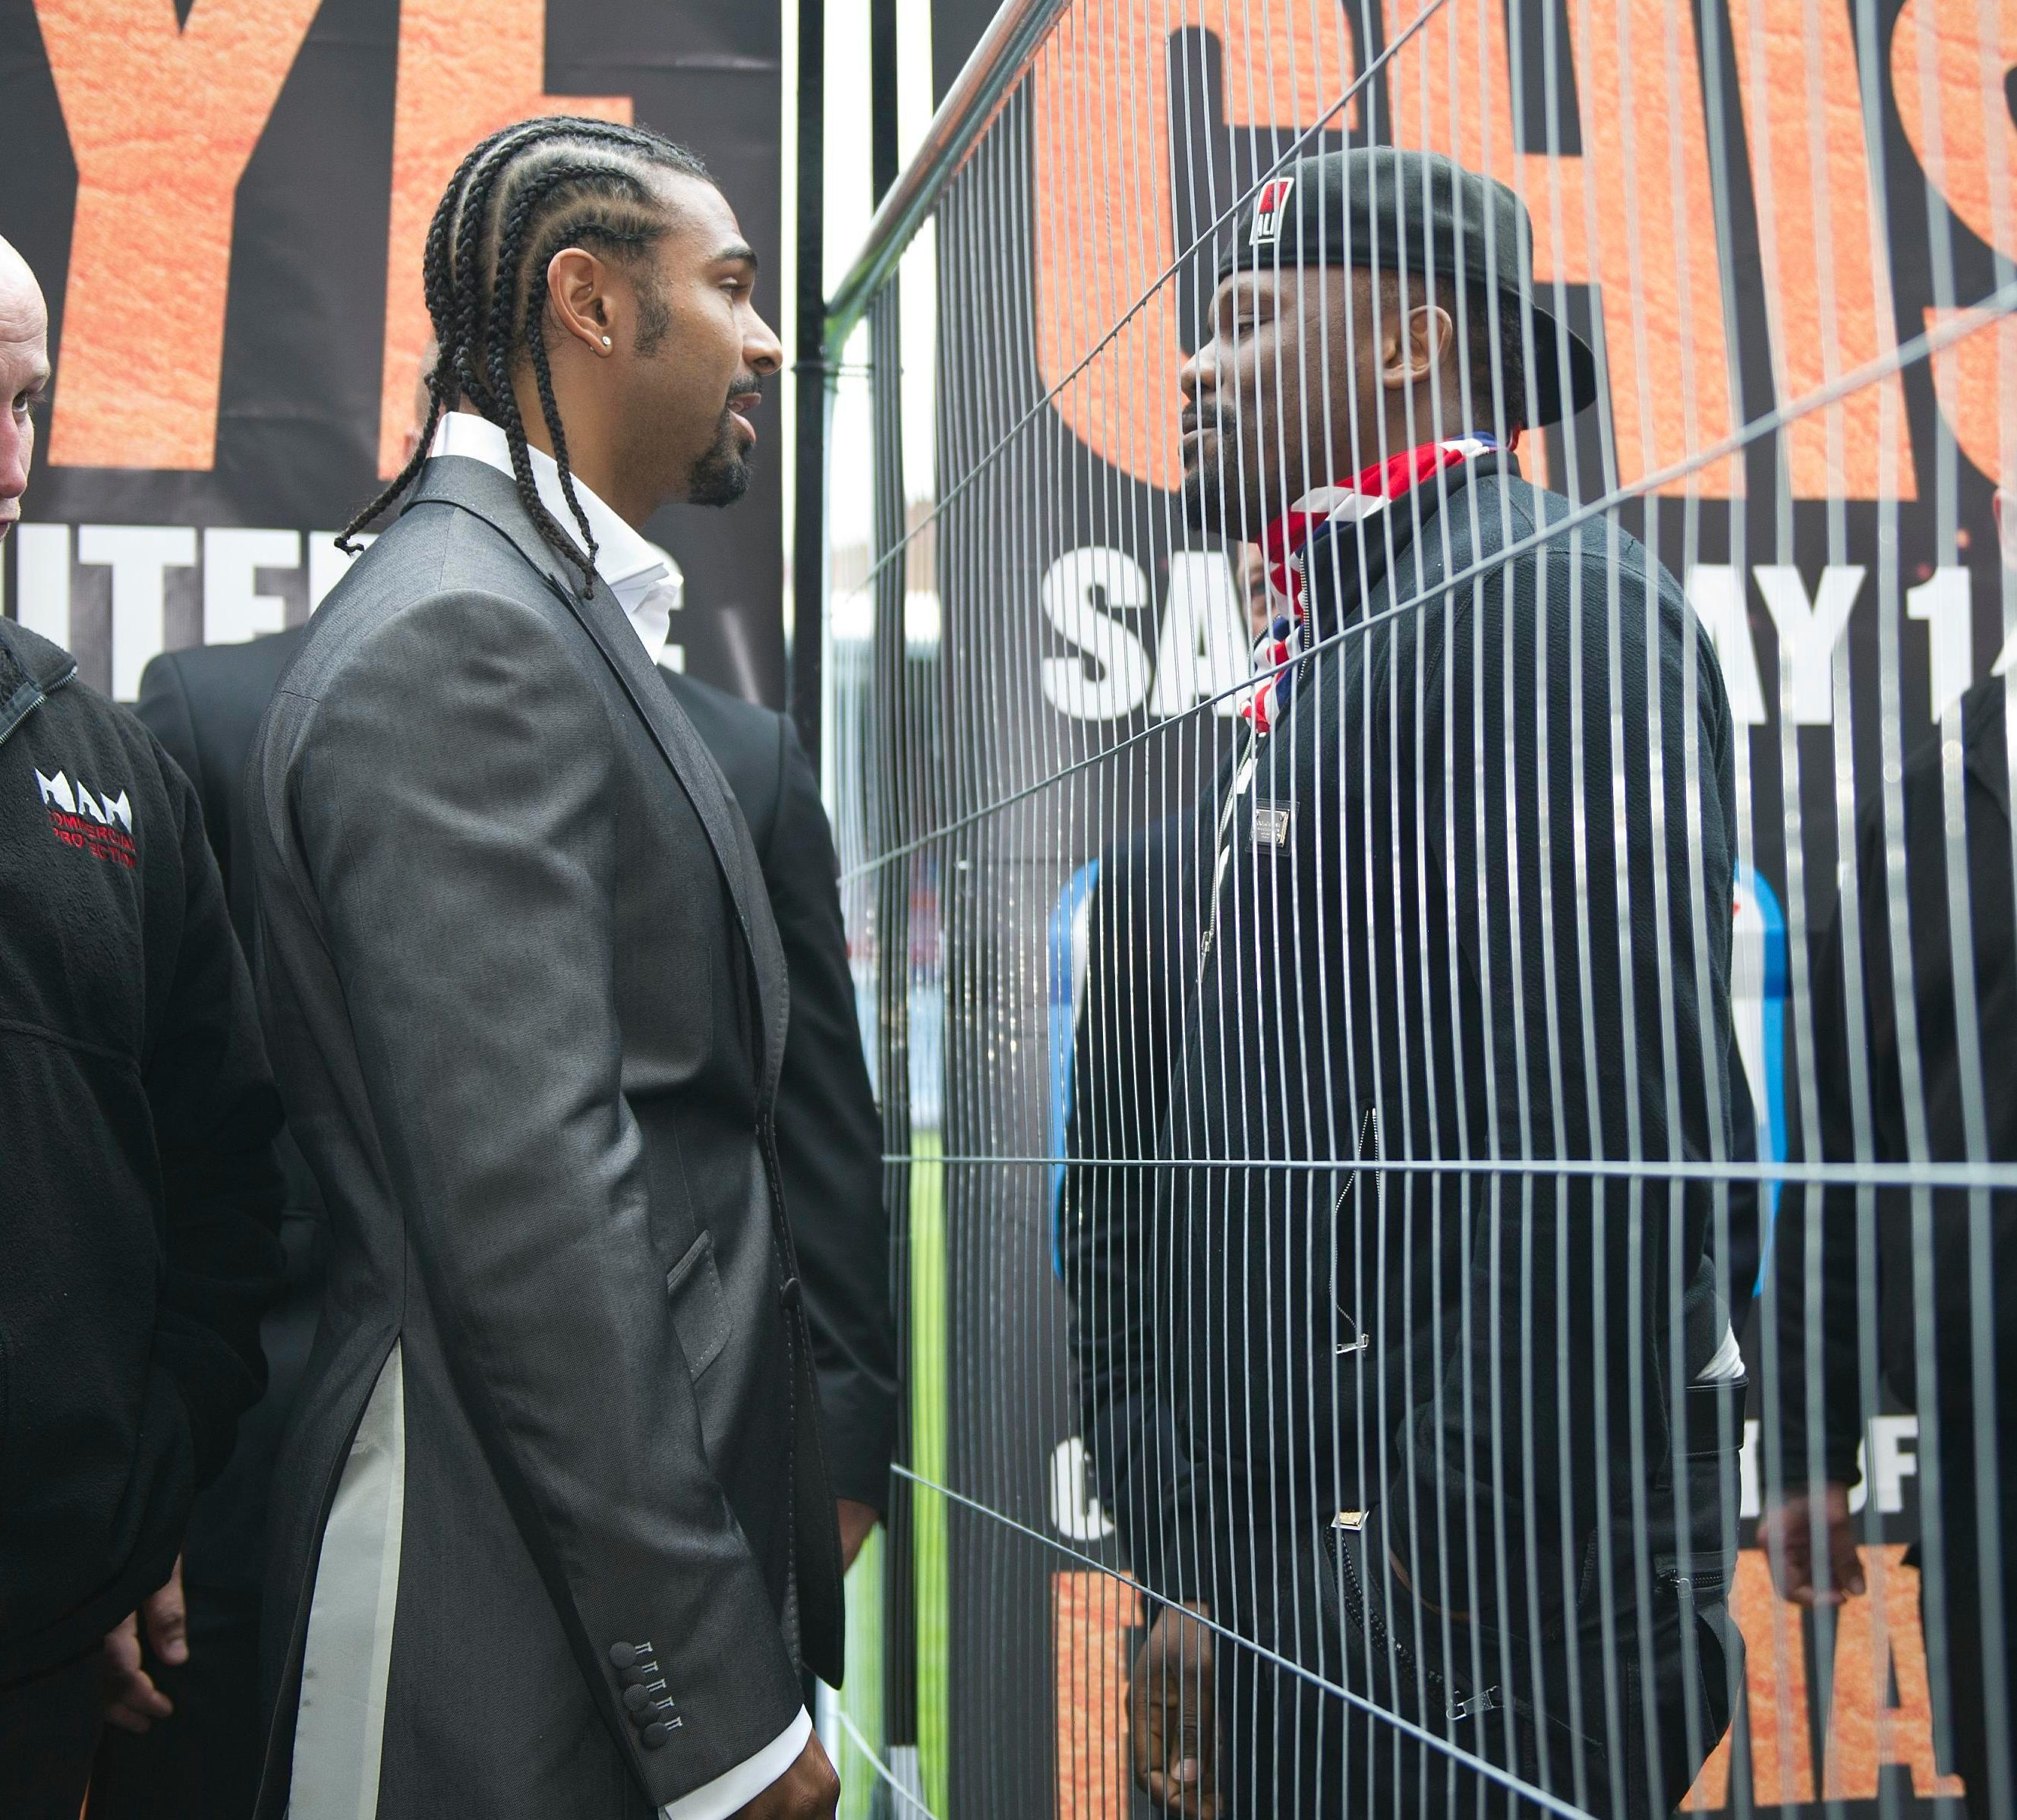 Haye feuded with Dereck Chisora, culminating in a brawl in which Chisora claims Haye glassed him